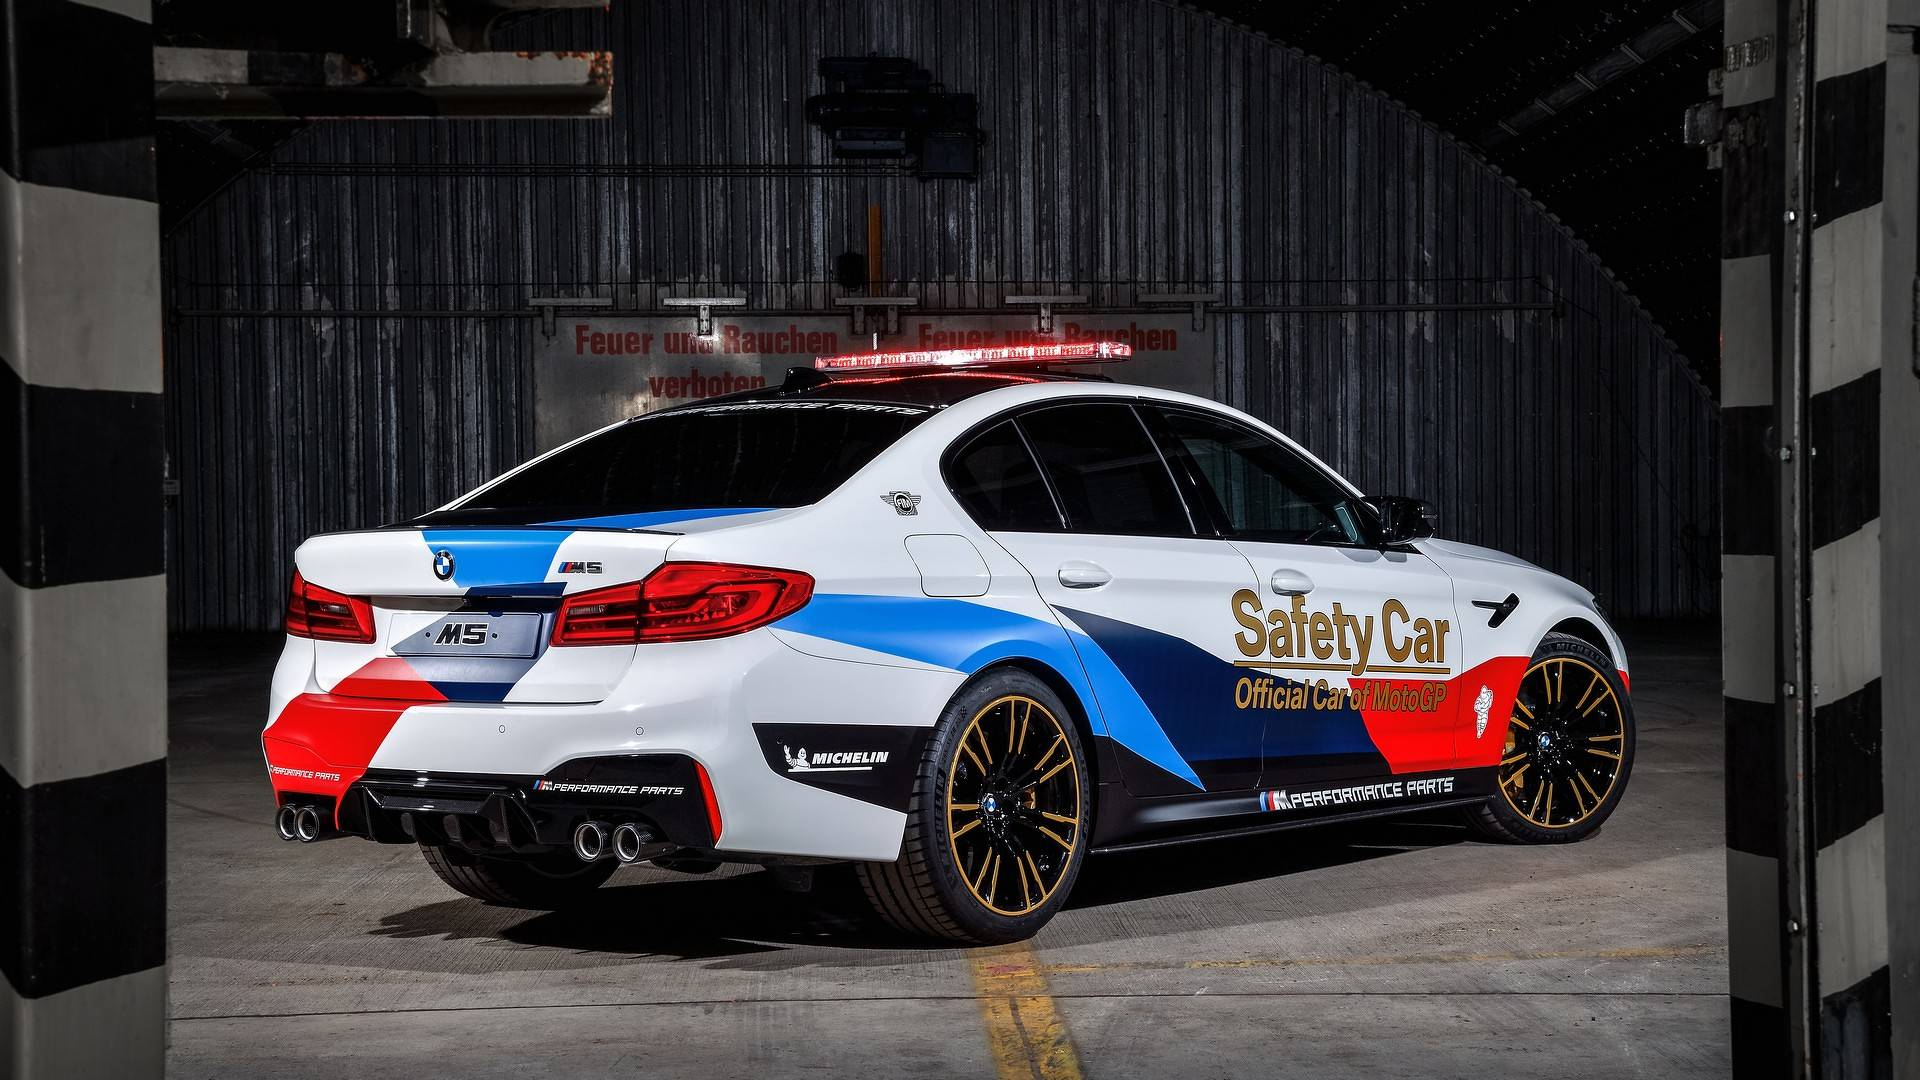 bmw-m5-motogp-safety-car (21)